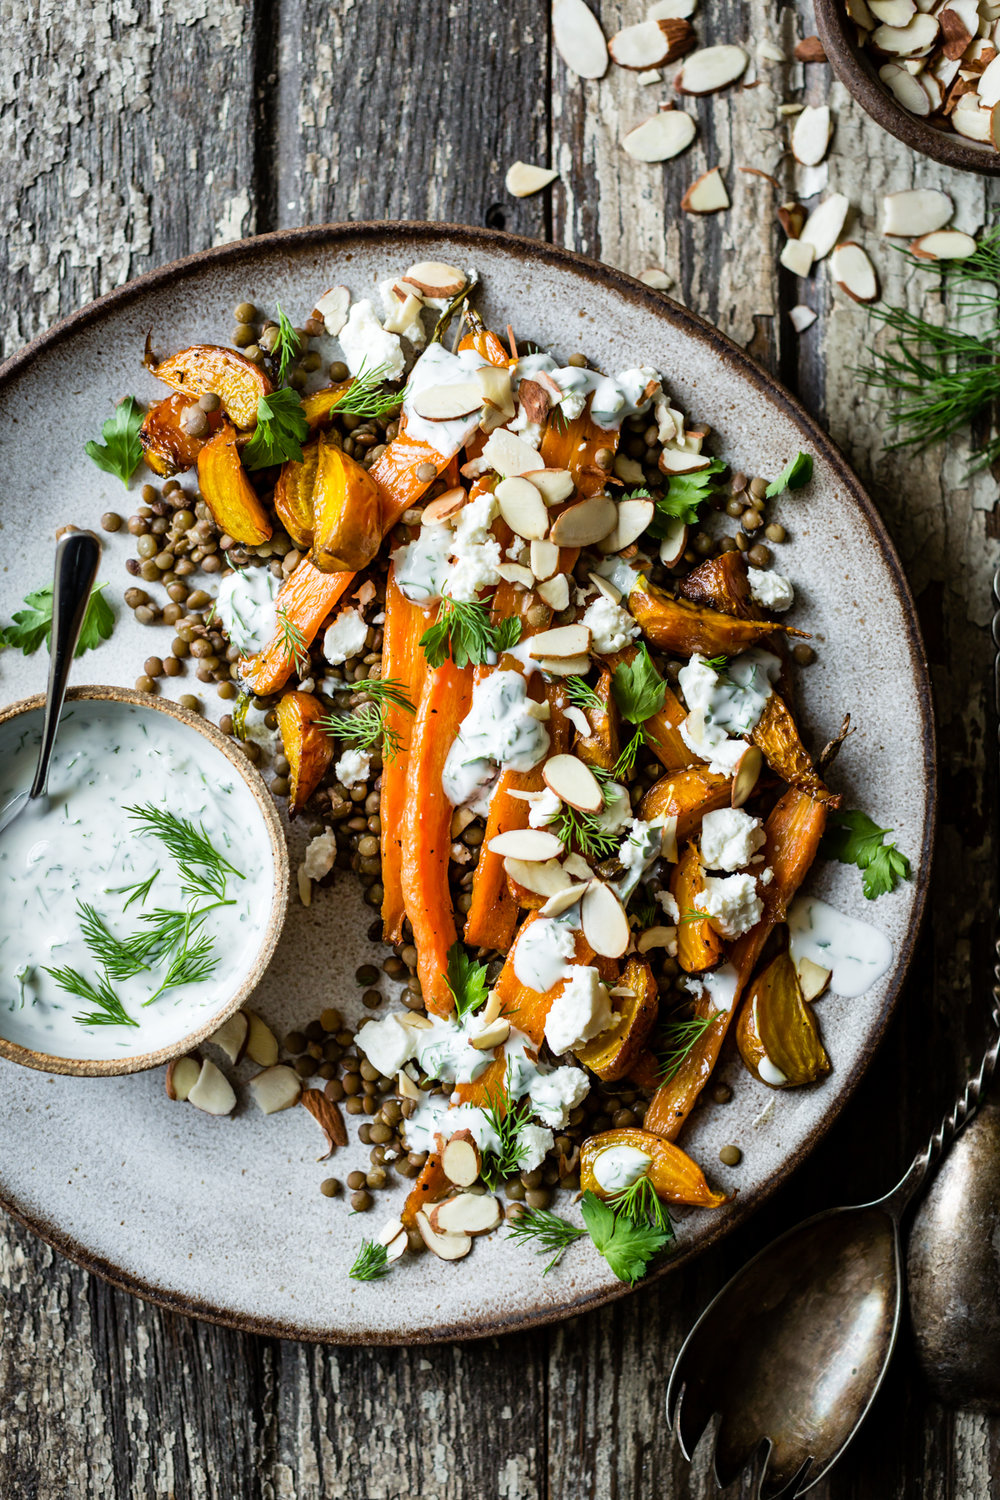 Monday - Roasted beet, carrot and lentil salad with with feta, yoghurt and dill